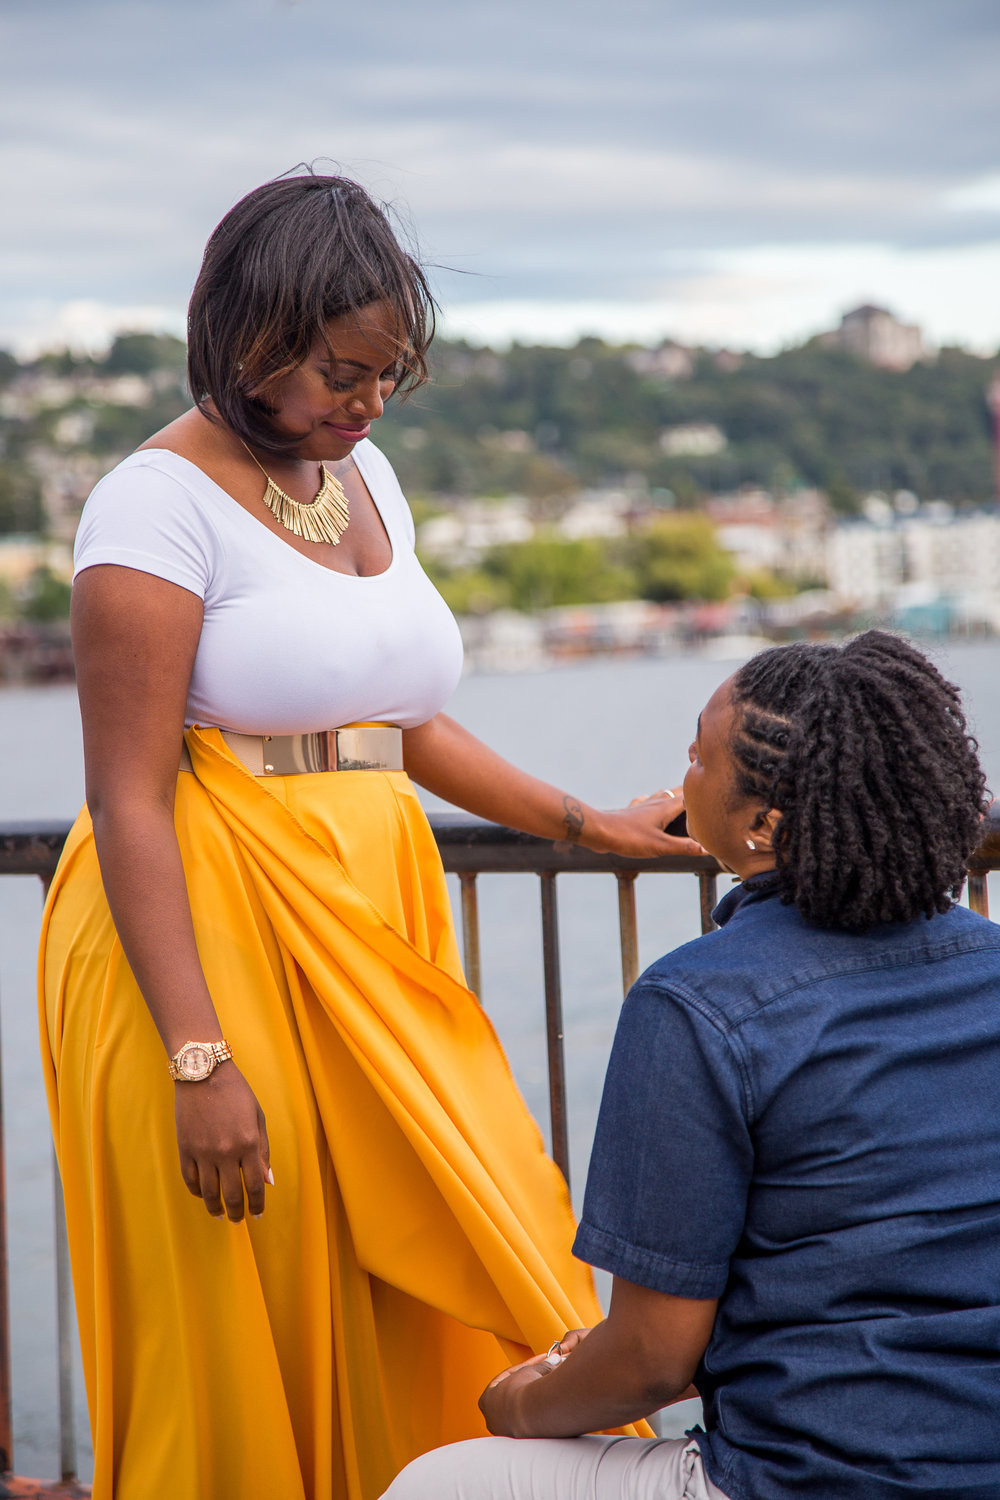 Taymah and Brittany surprise proposal - Photo by DBK Photography